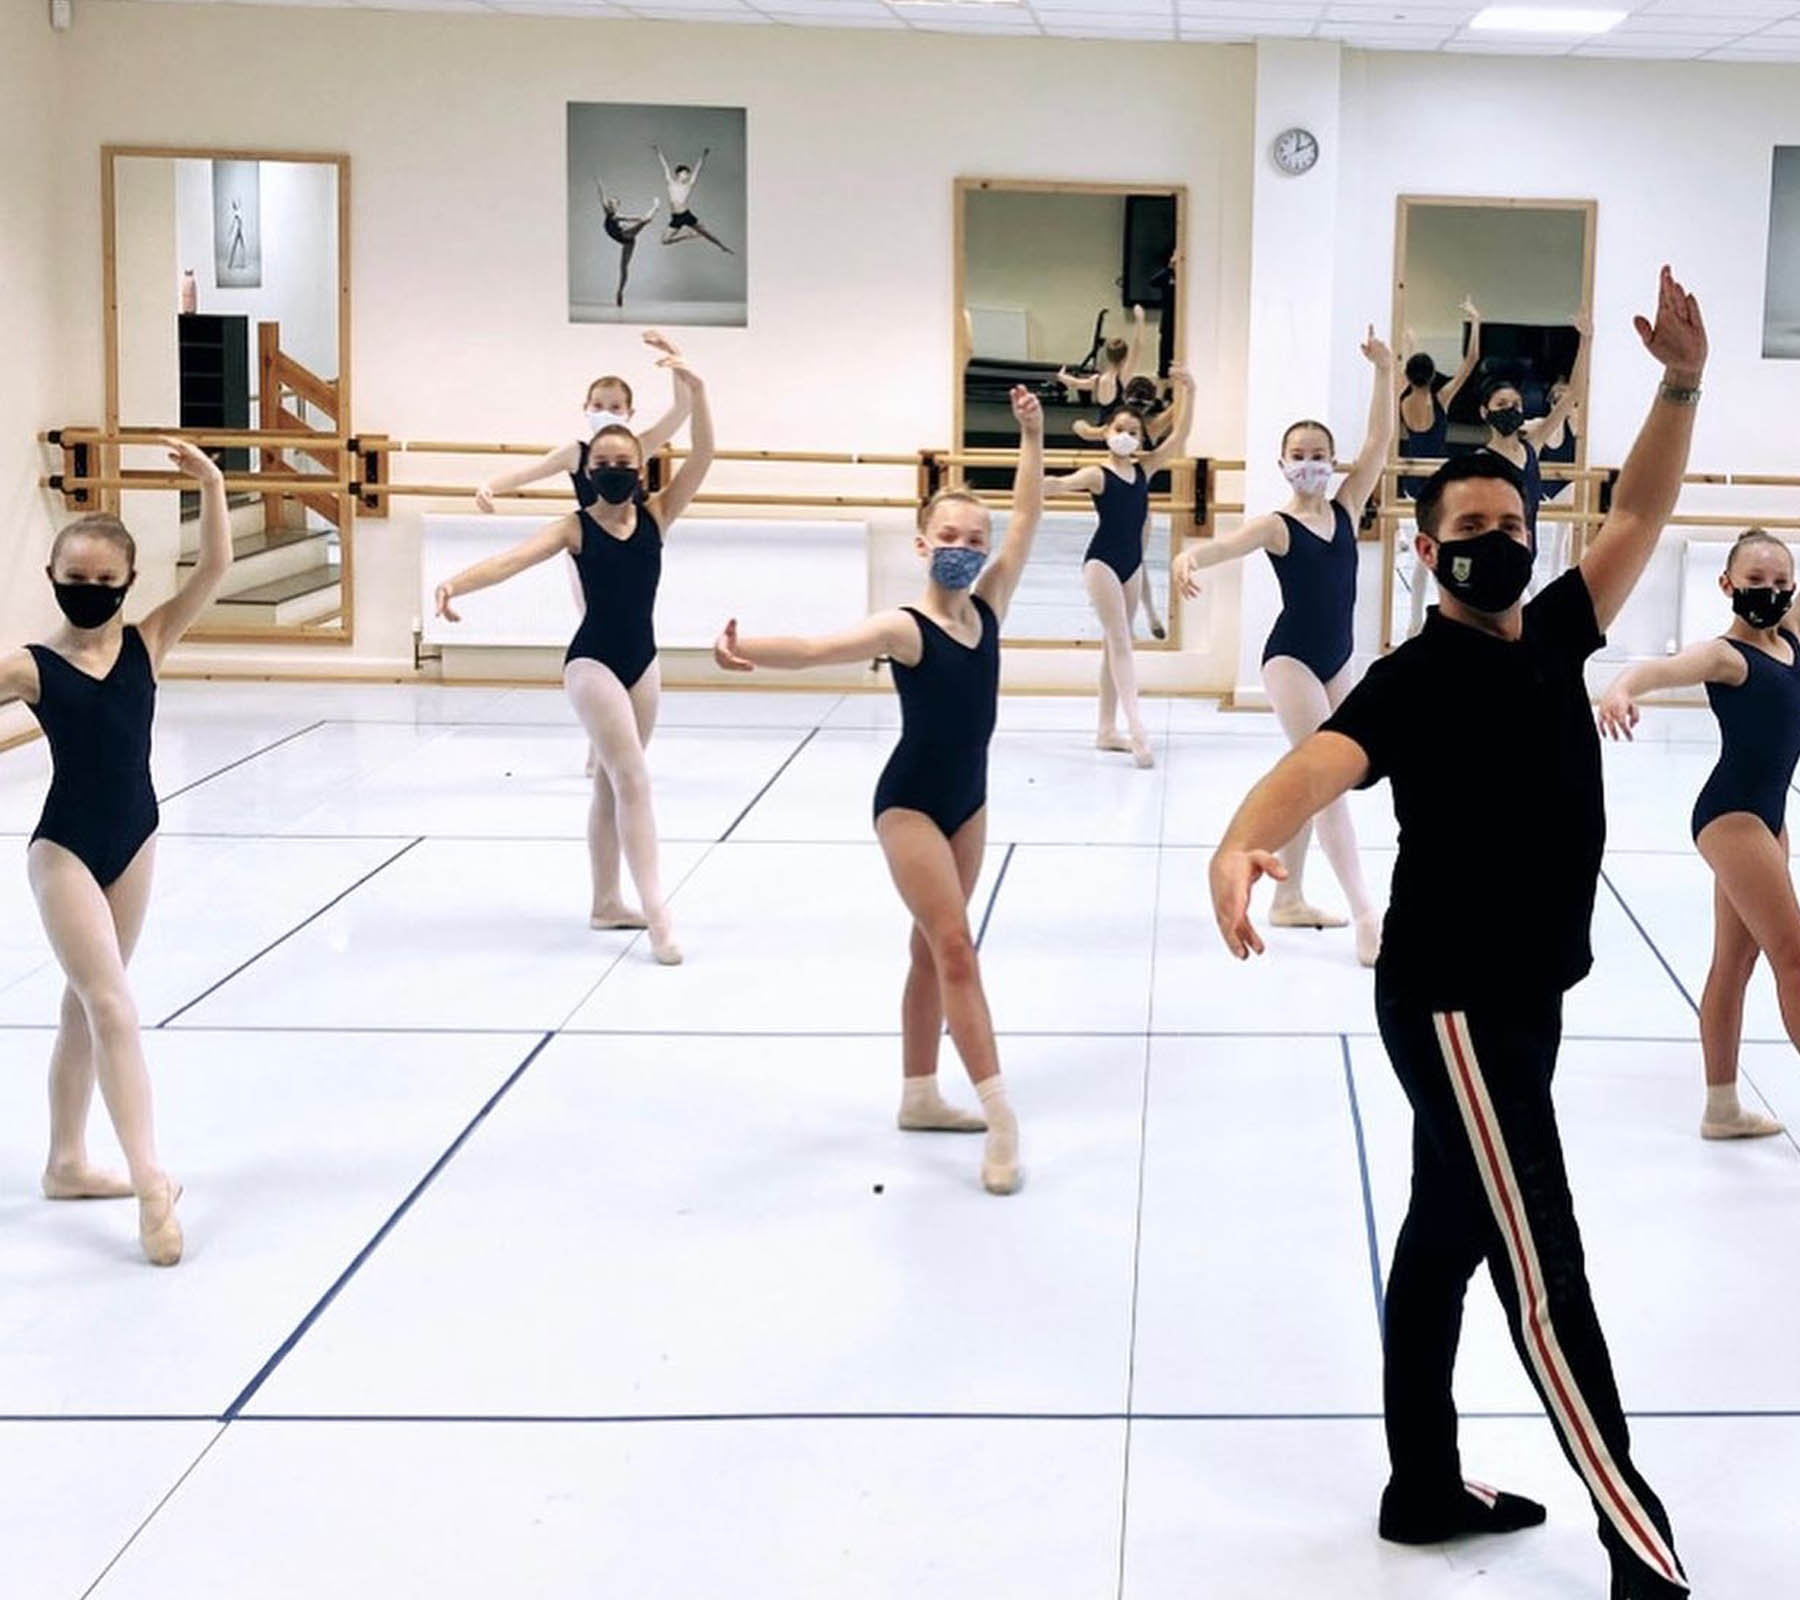 Students and teacher in class practicing moves